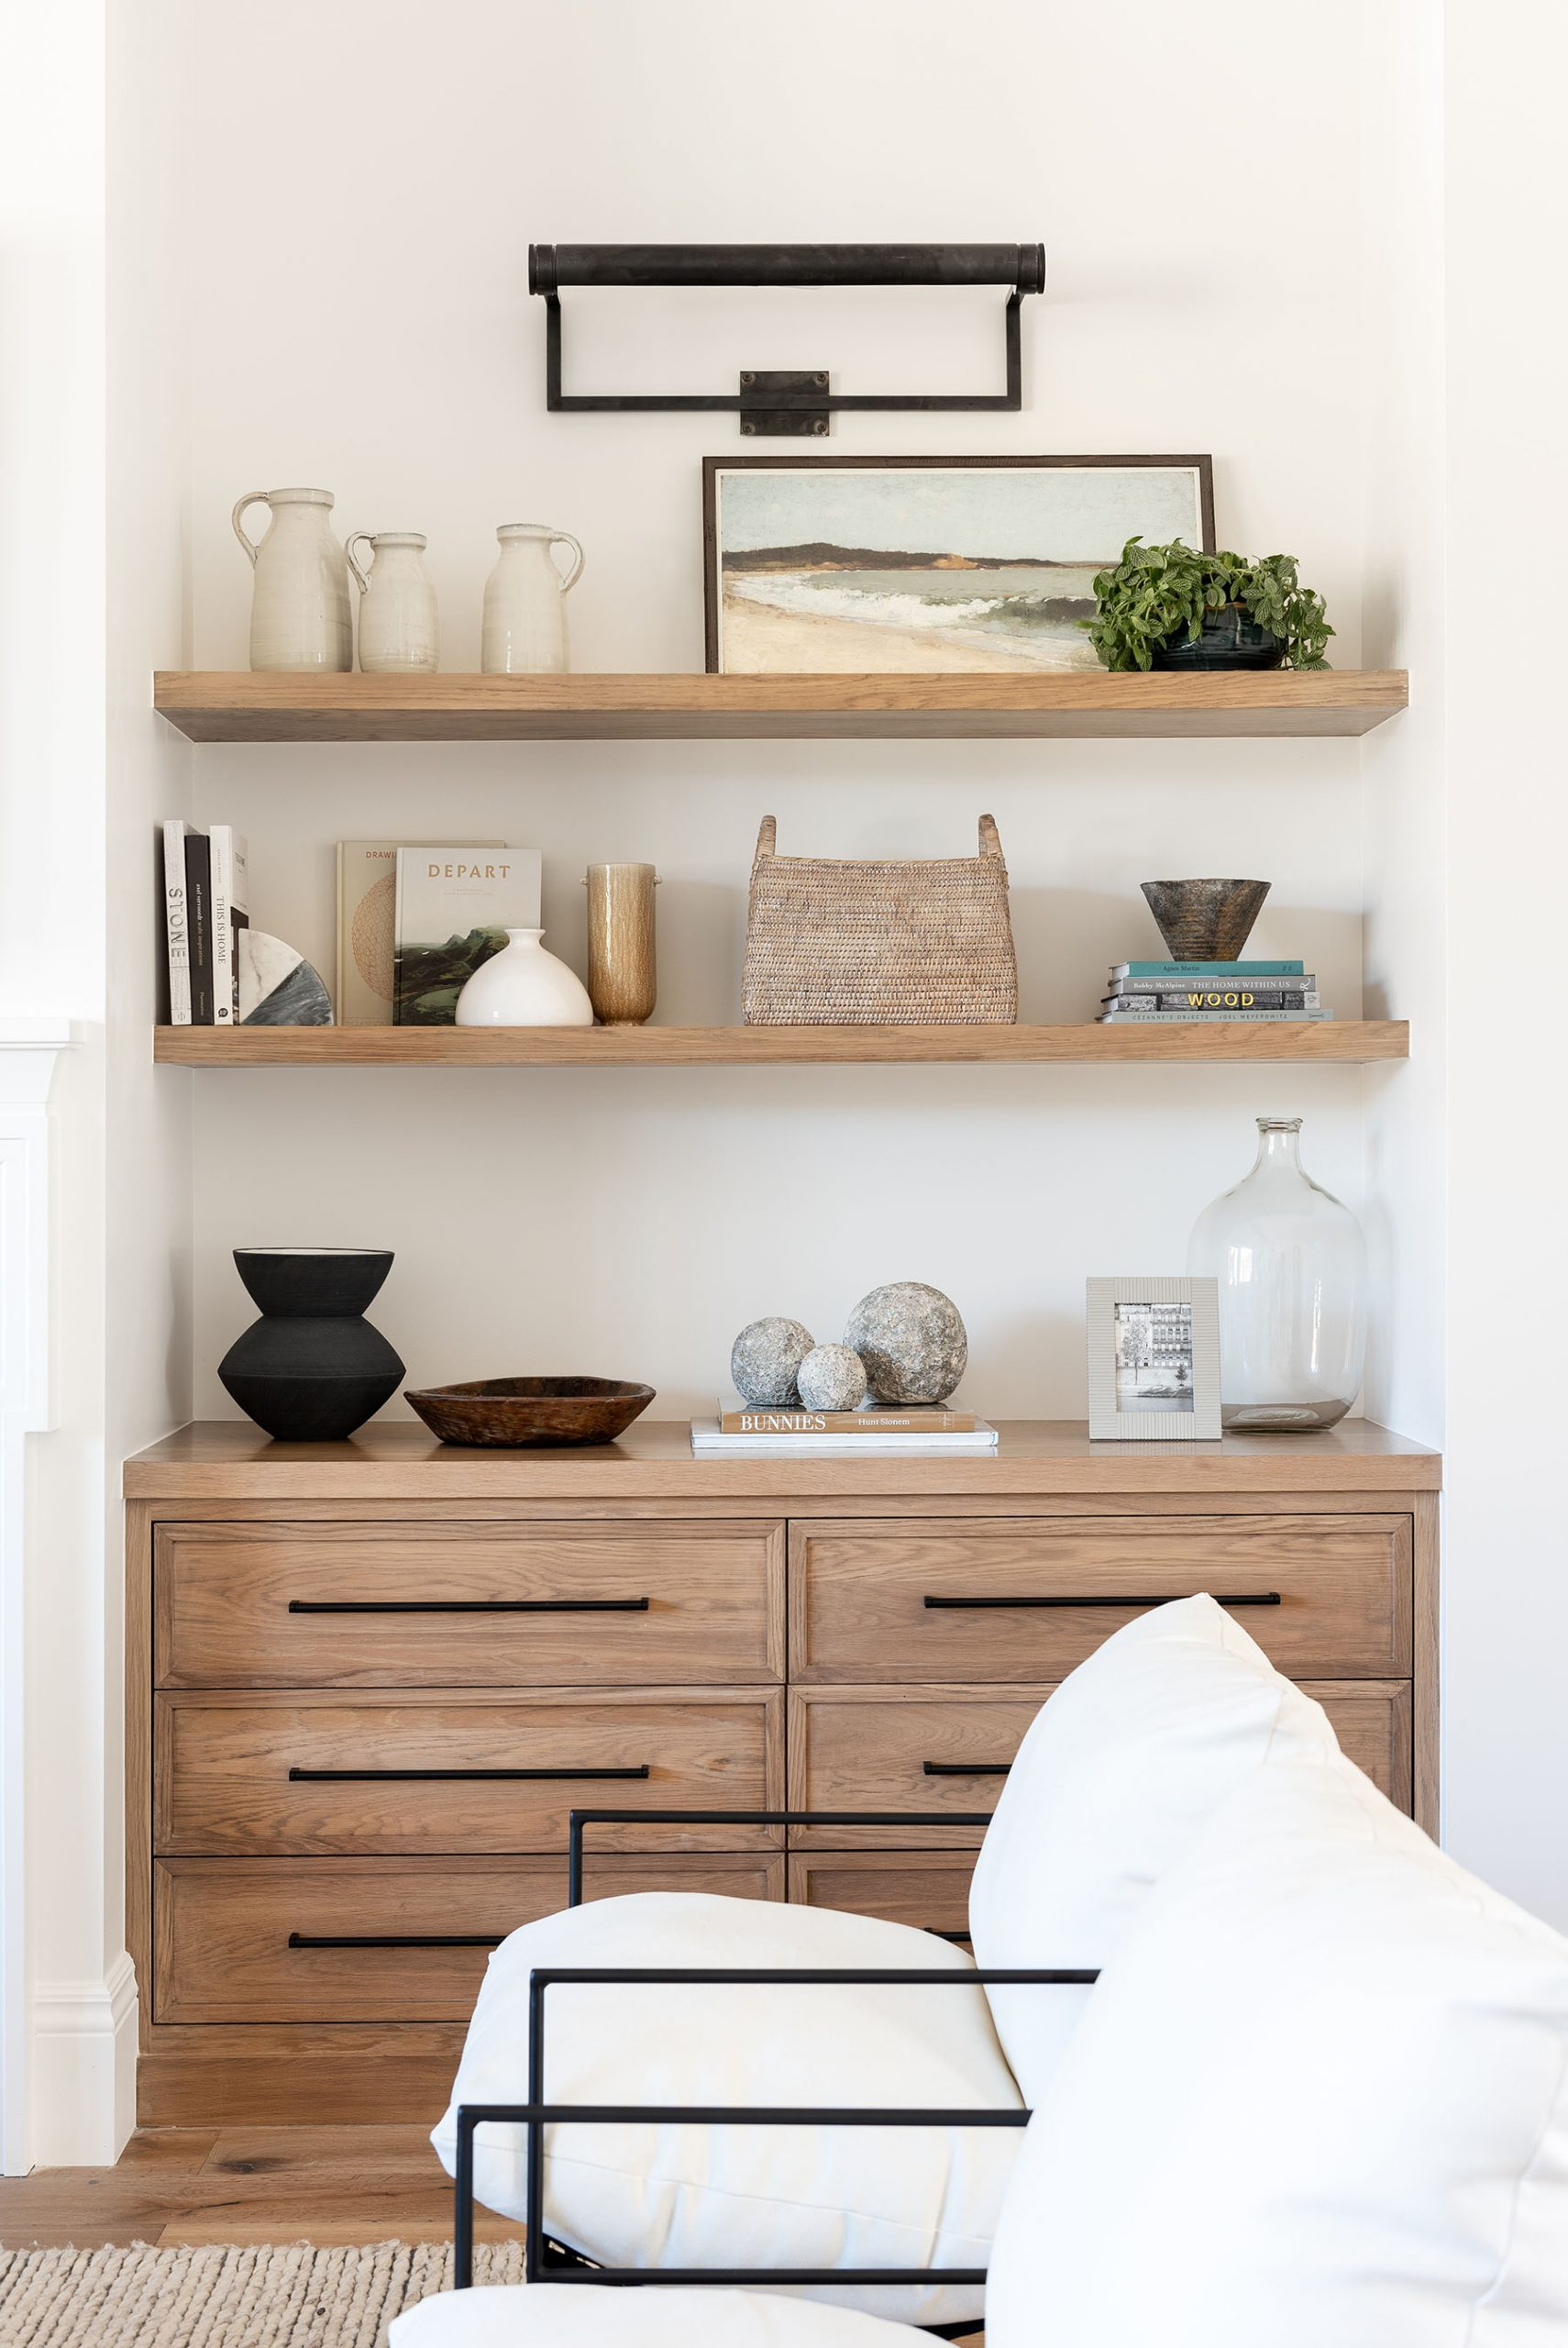 The Best Organizing Ideas From our Netflix Show